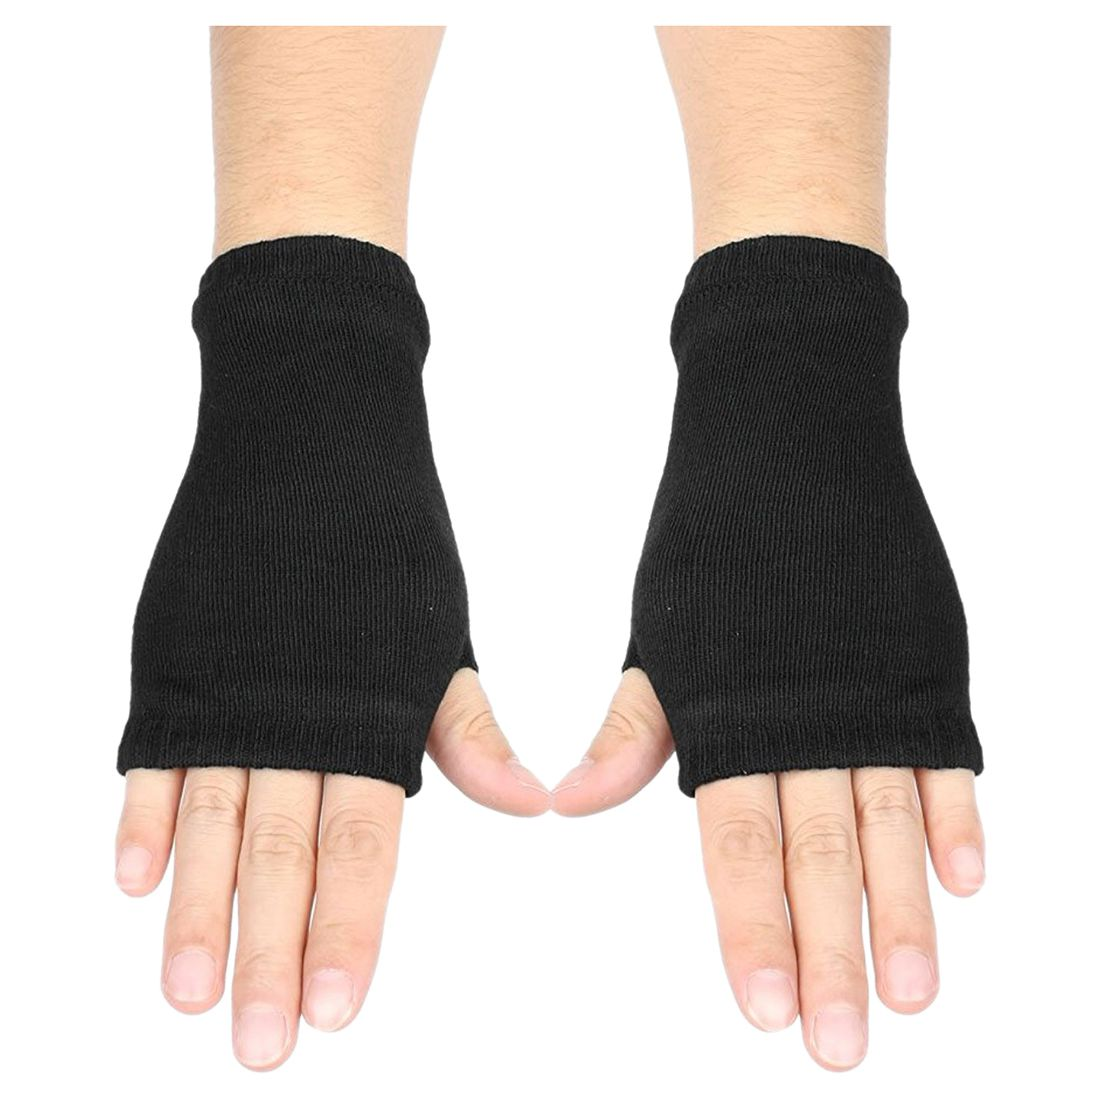 Black Elastic Combed Cotton Fingerless Gloves For Women